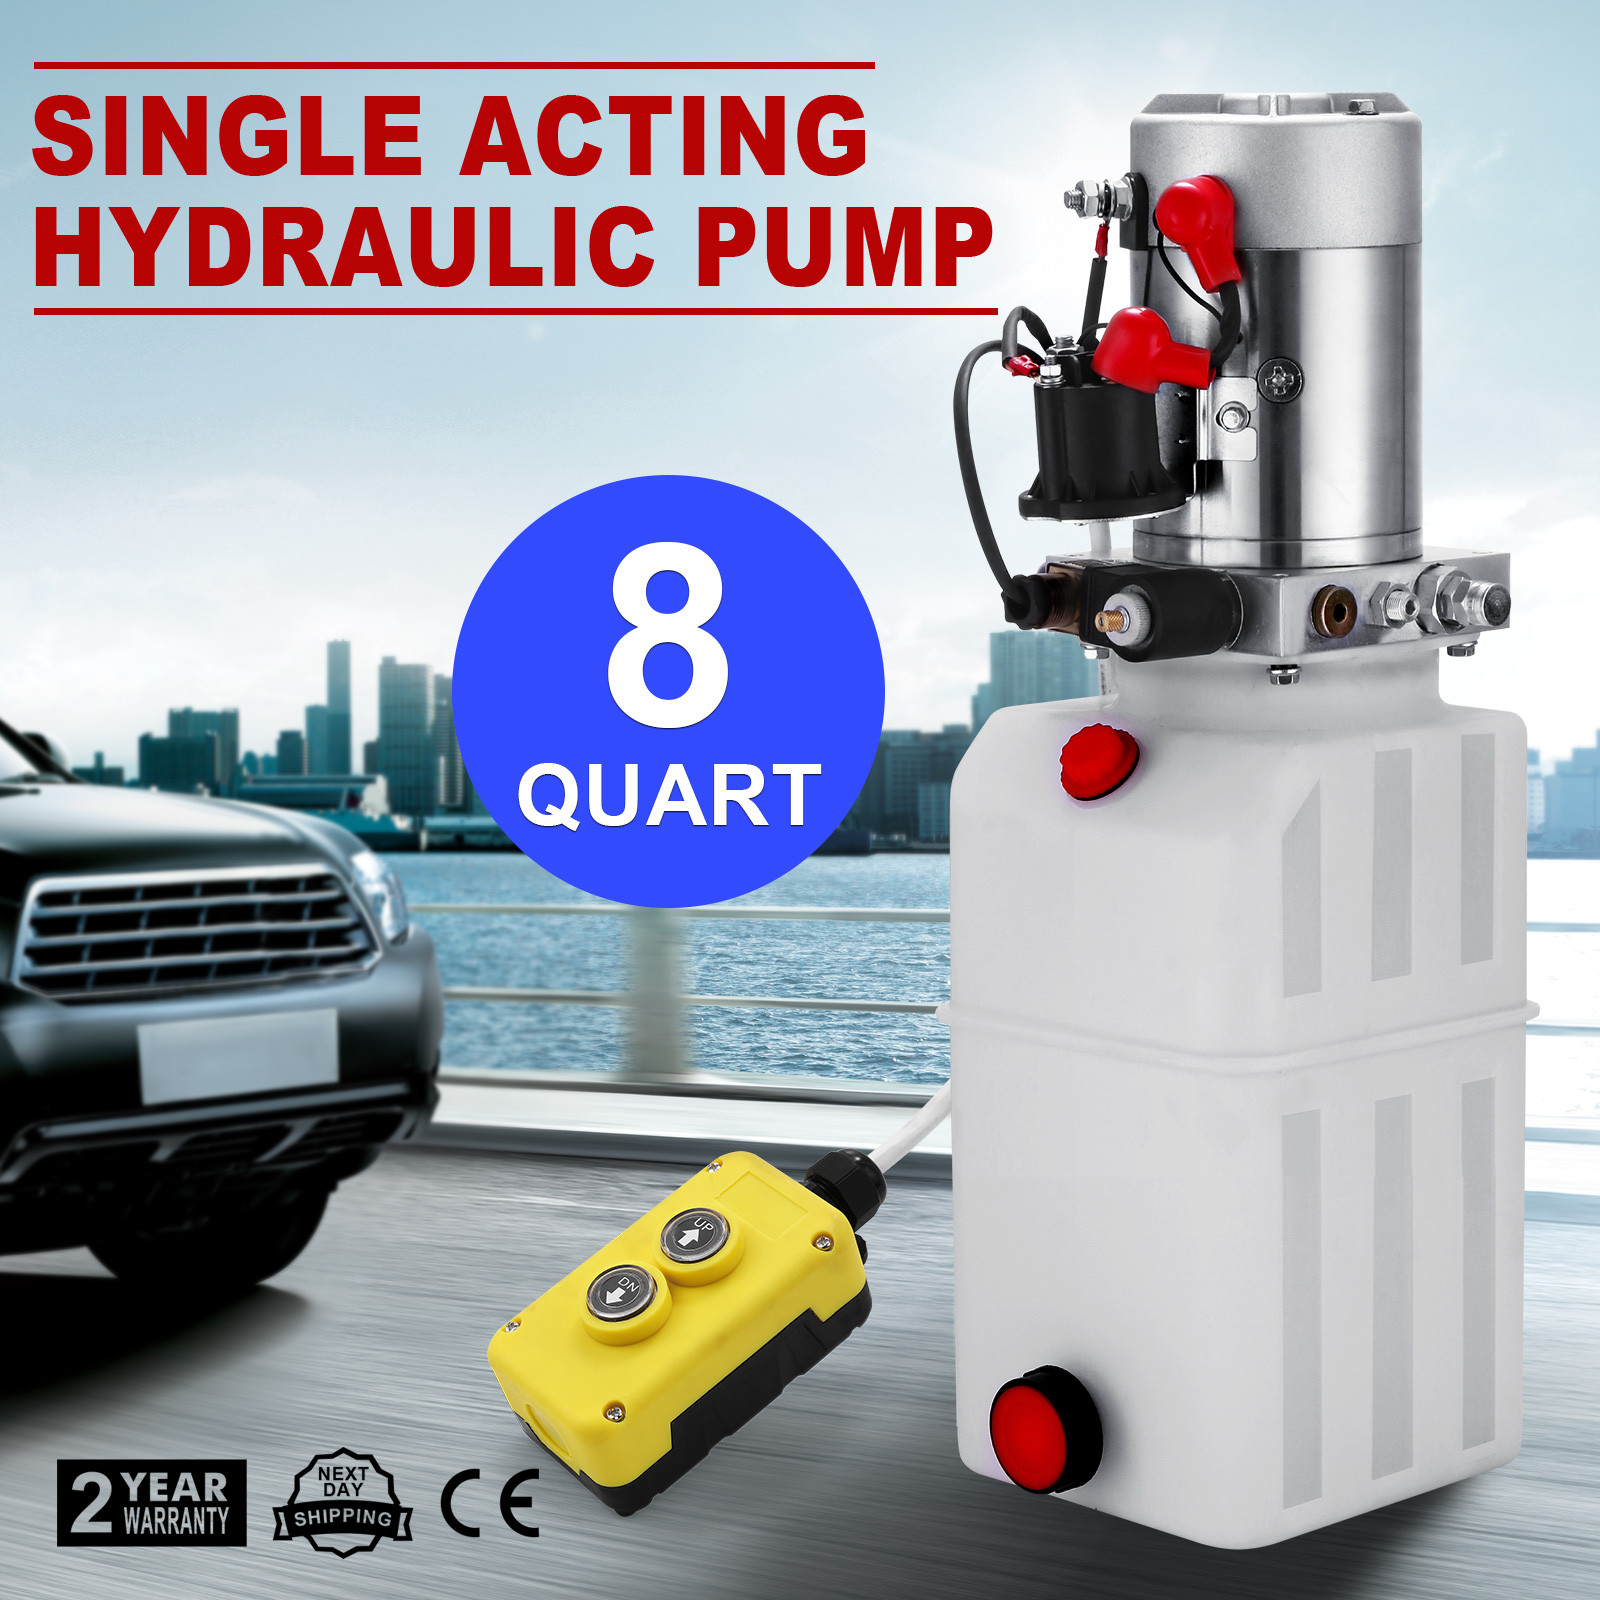 Dump trailer hydraulic pump troubleshooting : Passport to paris dvd